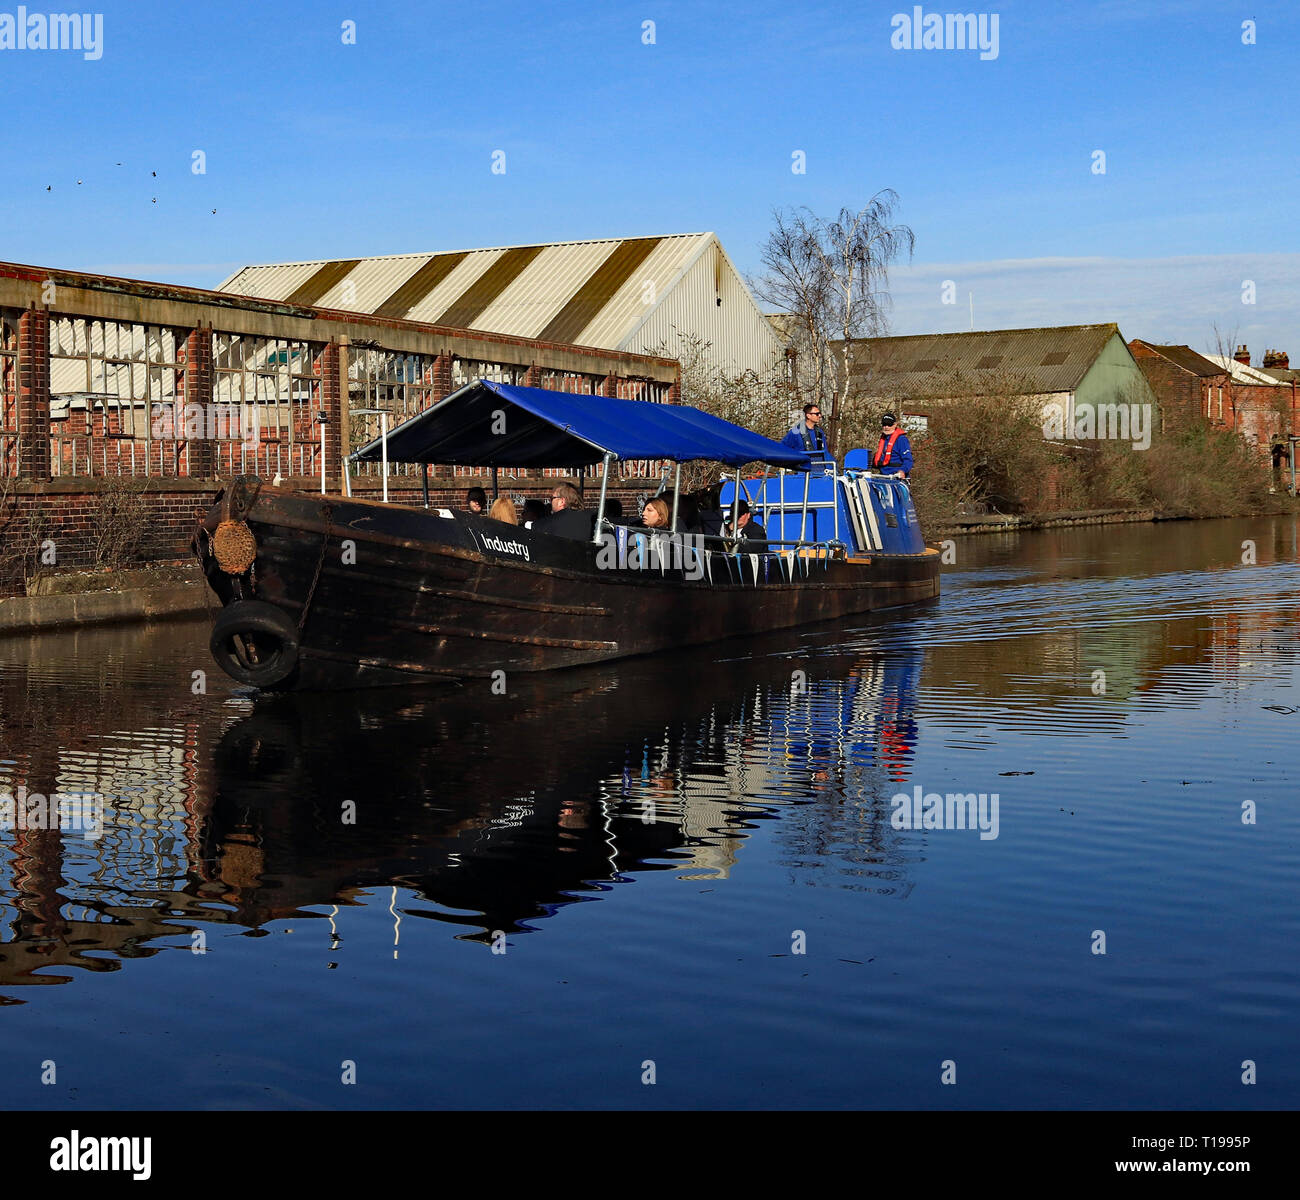 'Industry' passing the factory wall.  200 years ago in 1819 The Sheffield and Tinsley canal opened  and the celebration was recreated in 2019 Cw 6622 - Stock Image